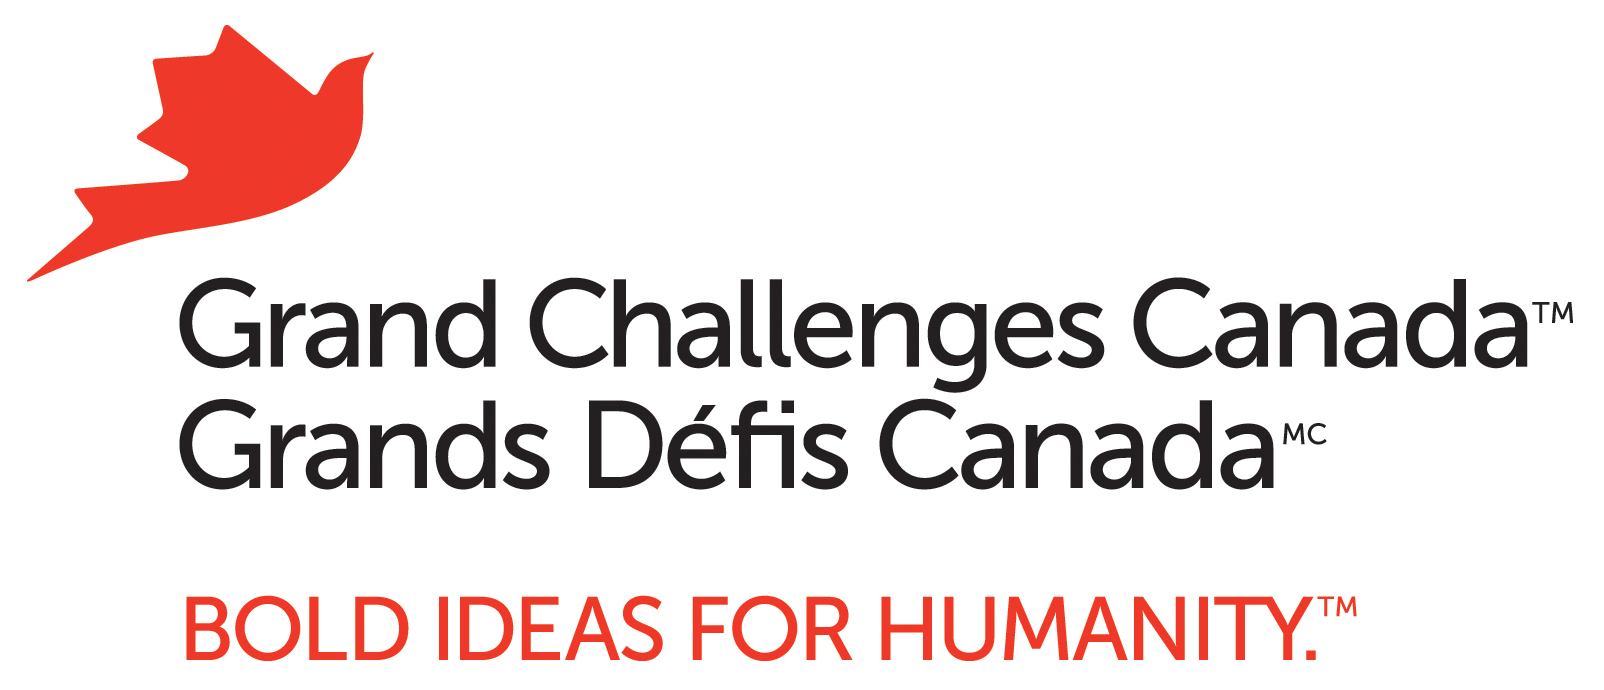 grand-challenges-canada4.jpg